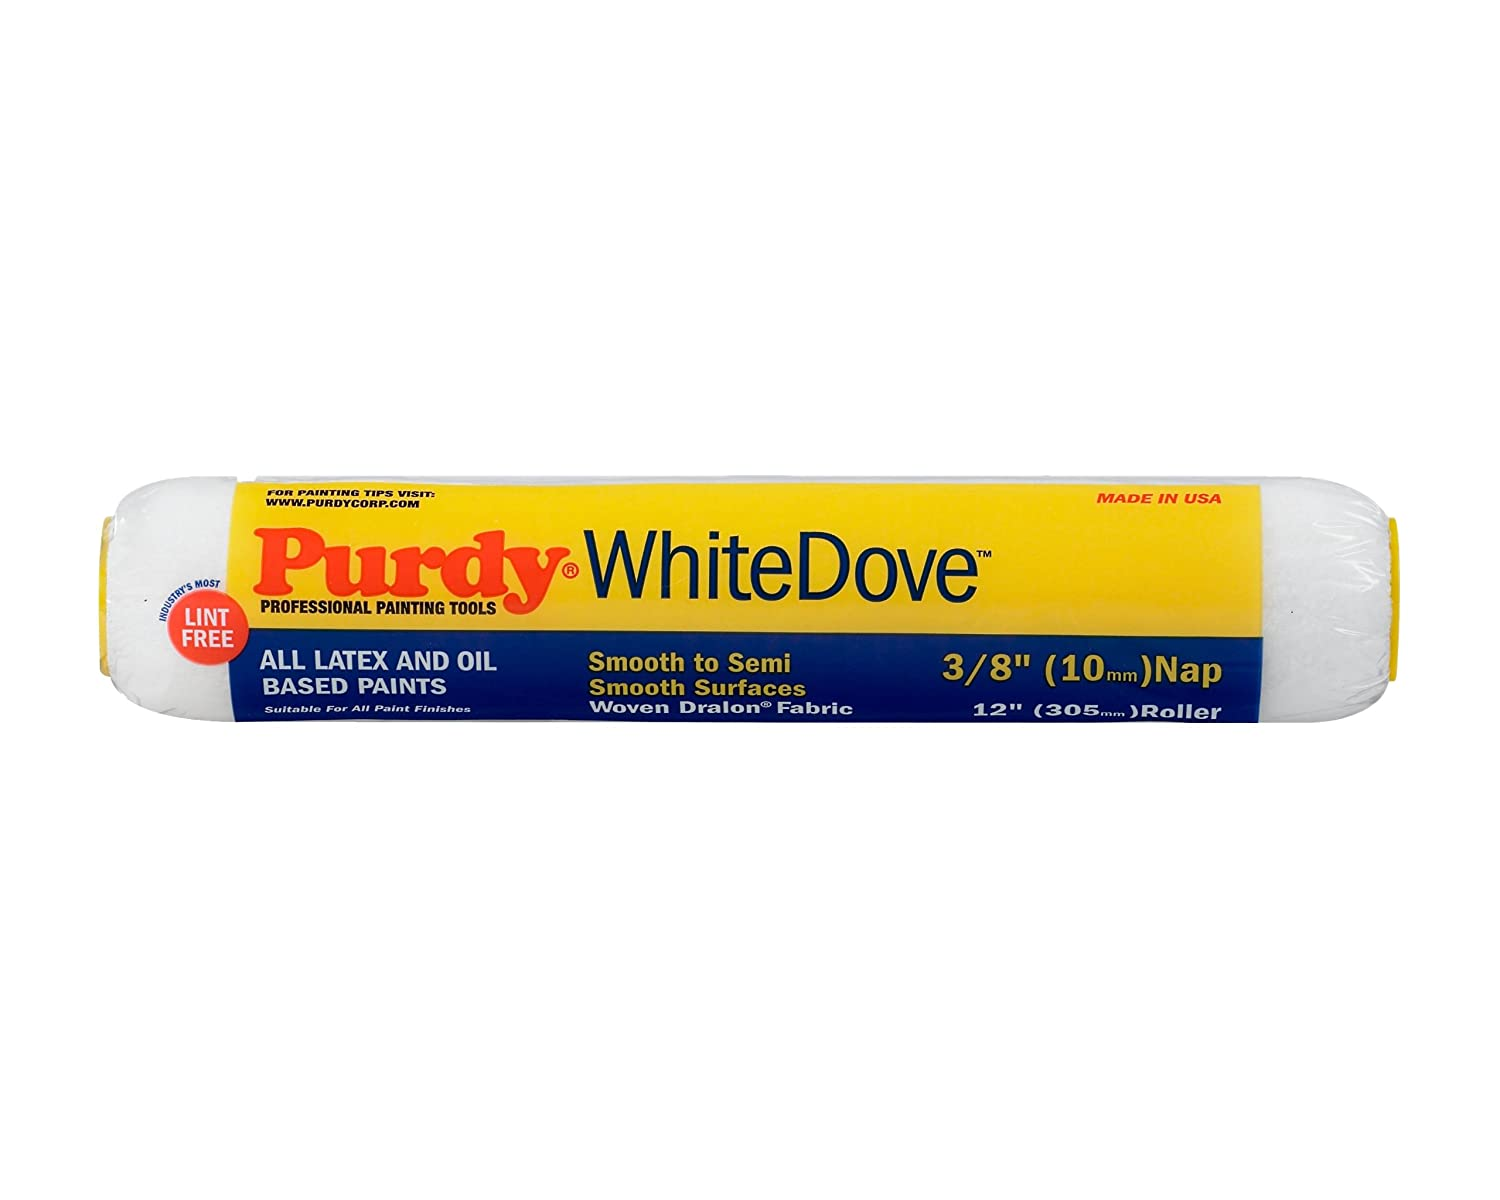 Purdy 140670122 White Dove Roller Cover, 12 Inch x 3/8 nap